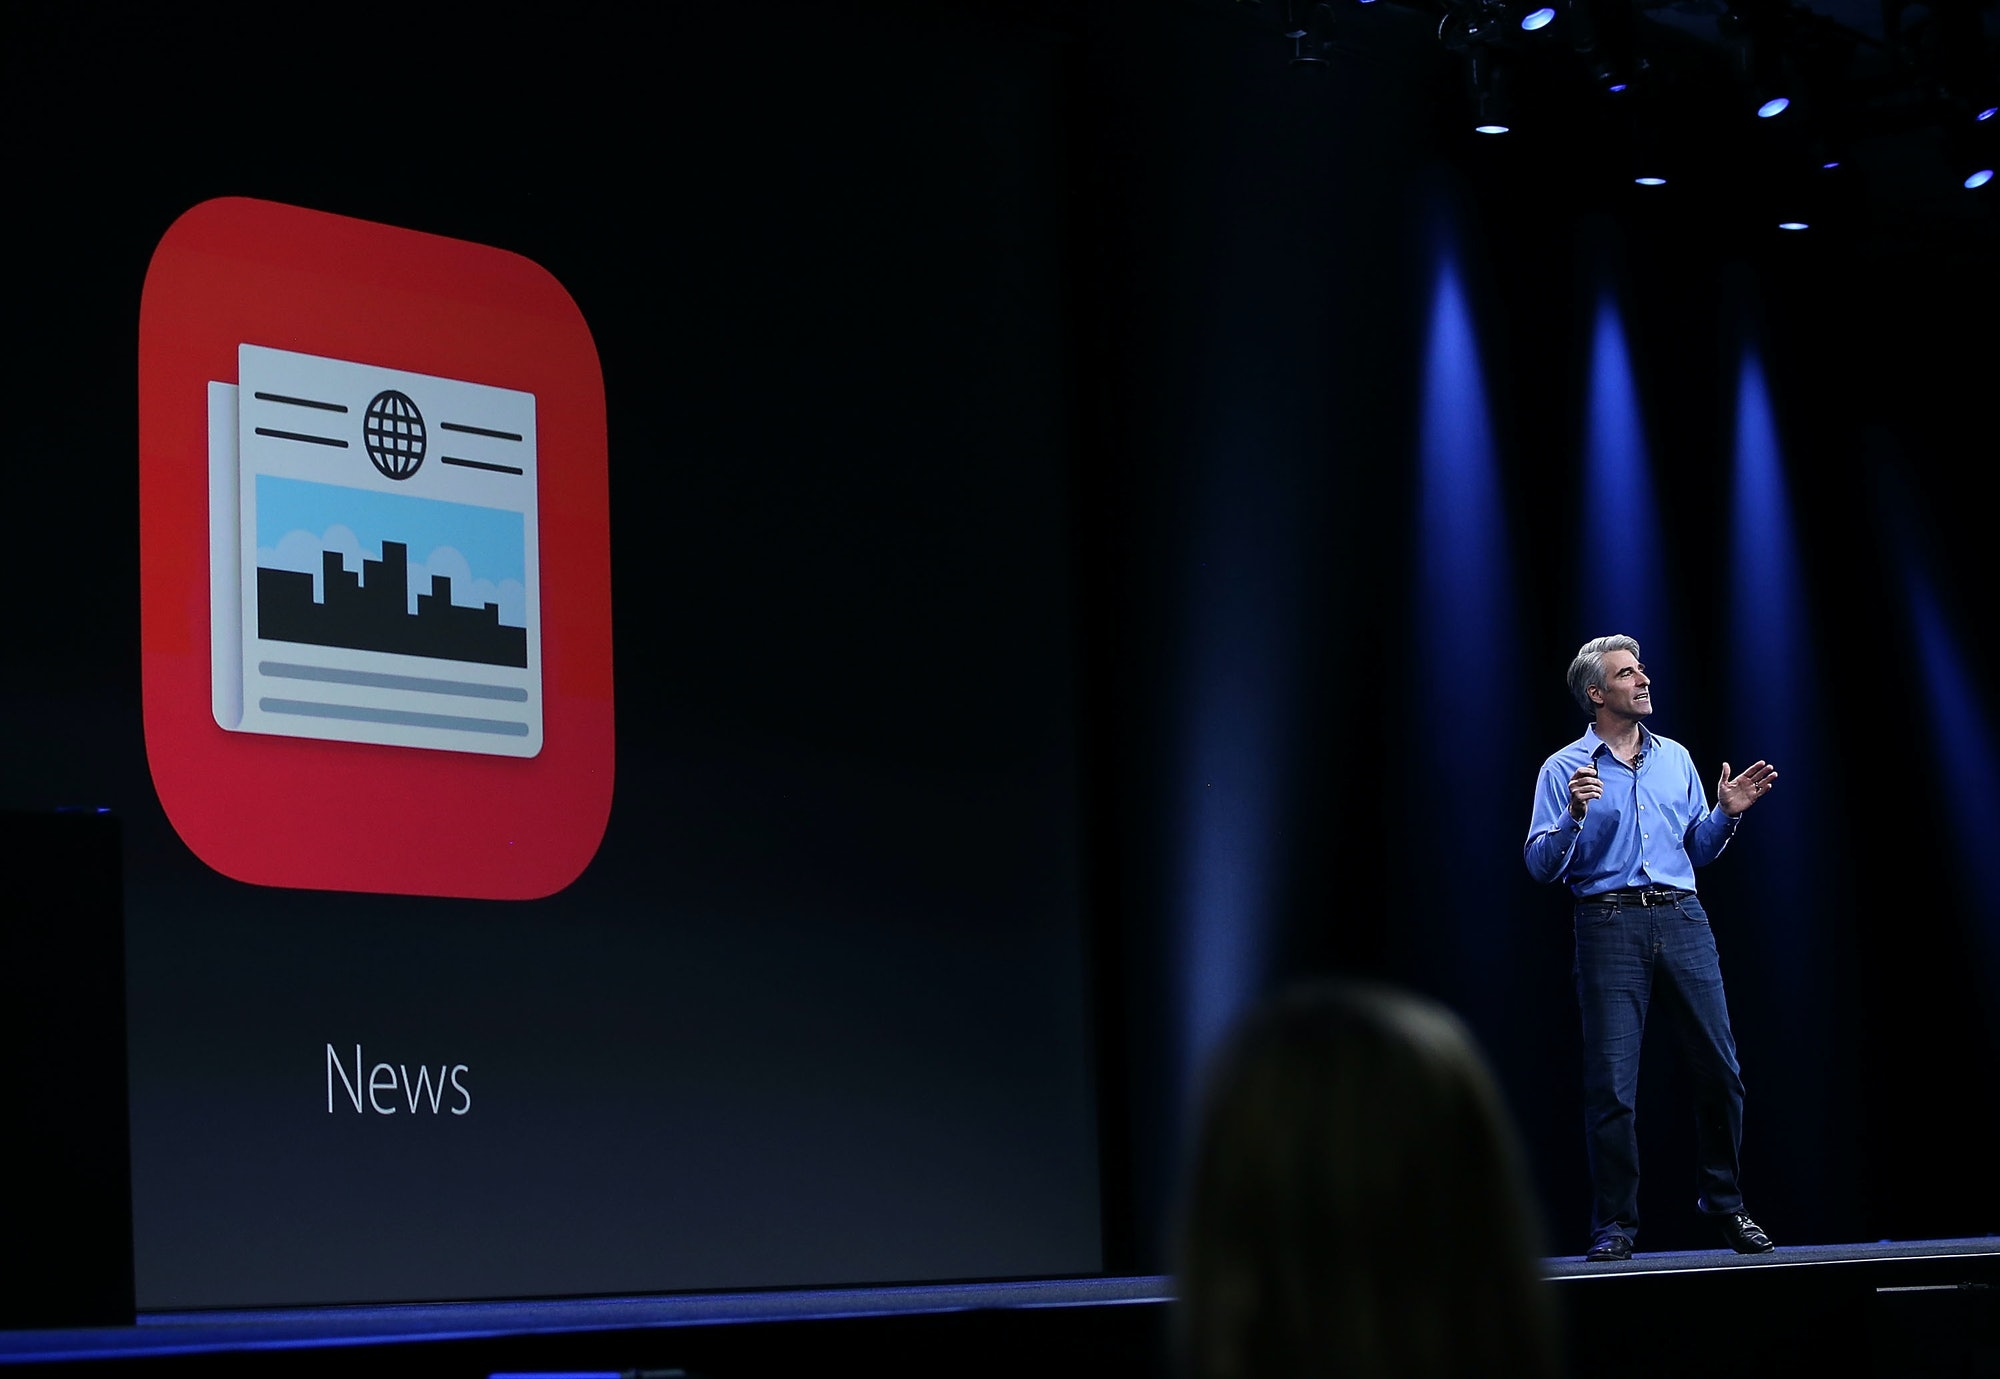 Craig Federighi, Apple senior vice president of Software Engineering, introducing the News app in 2015.